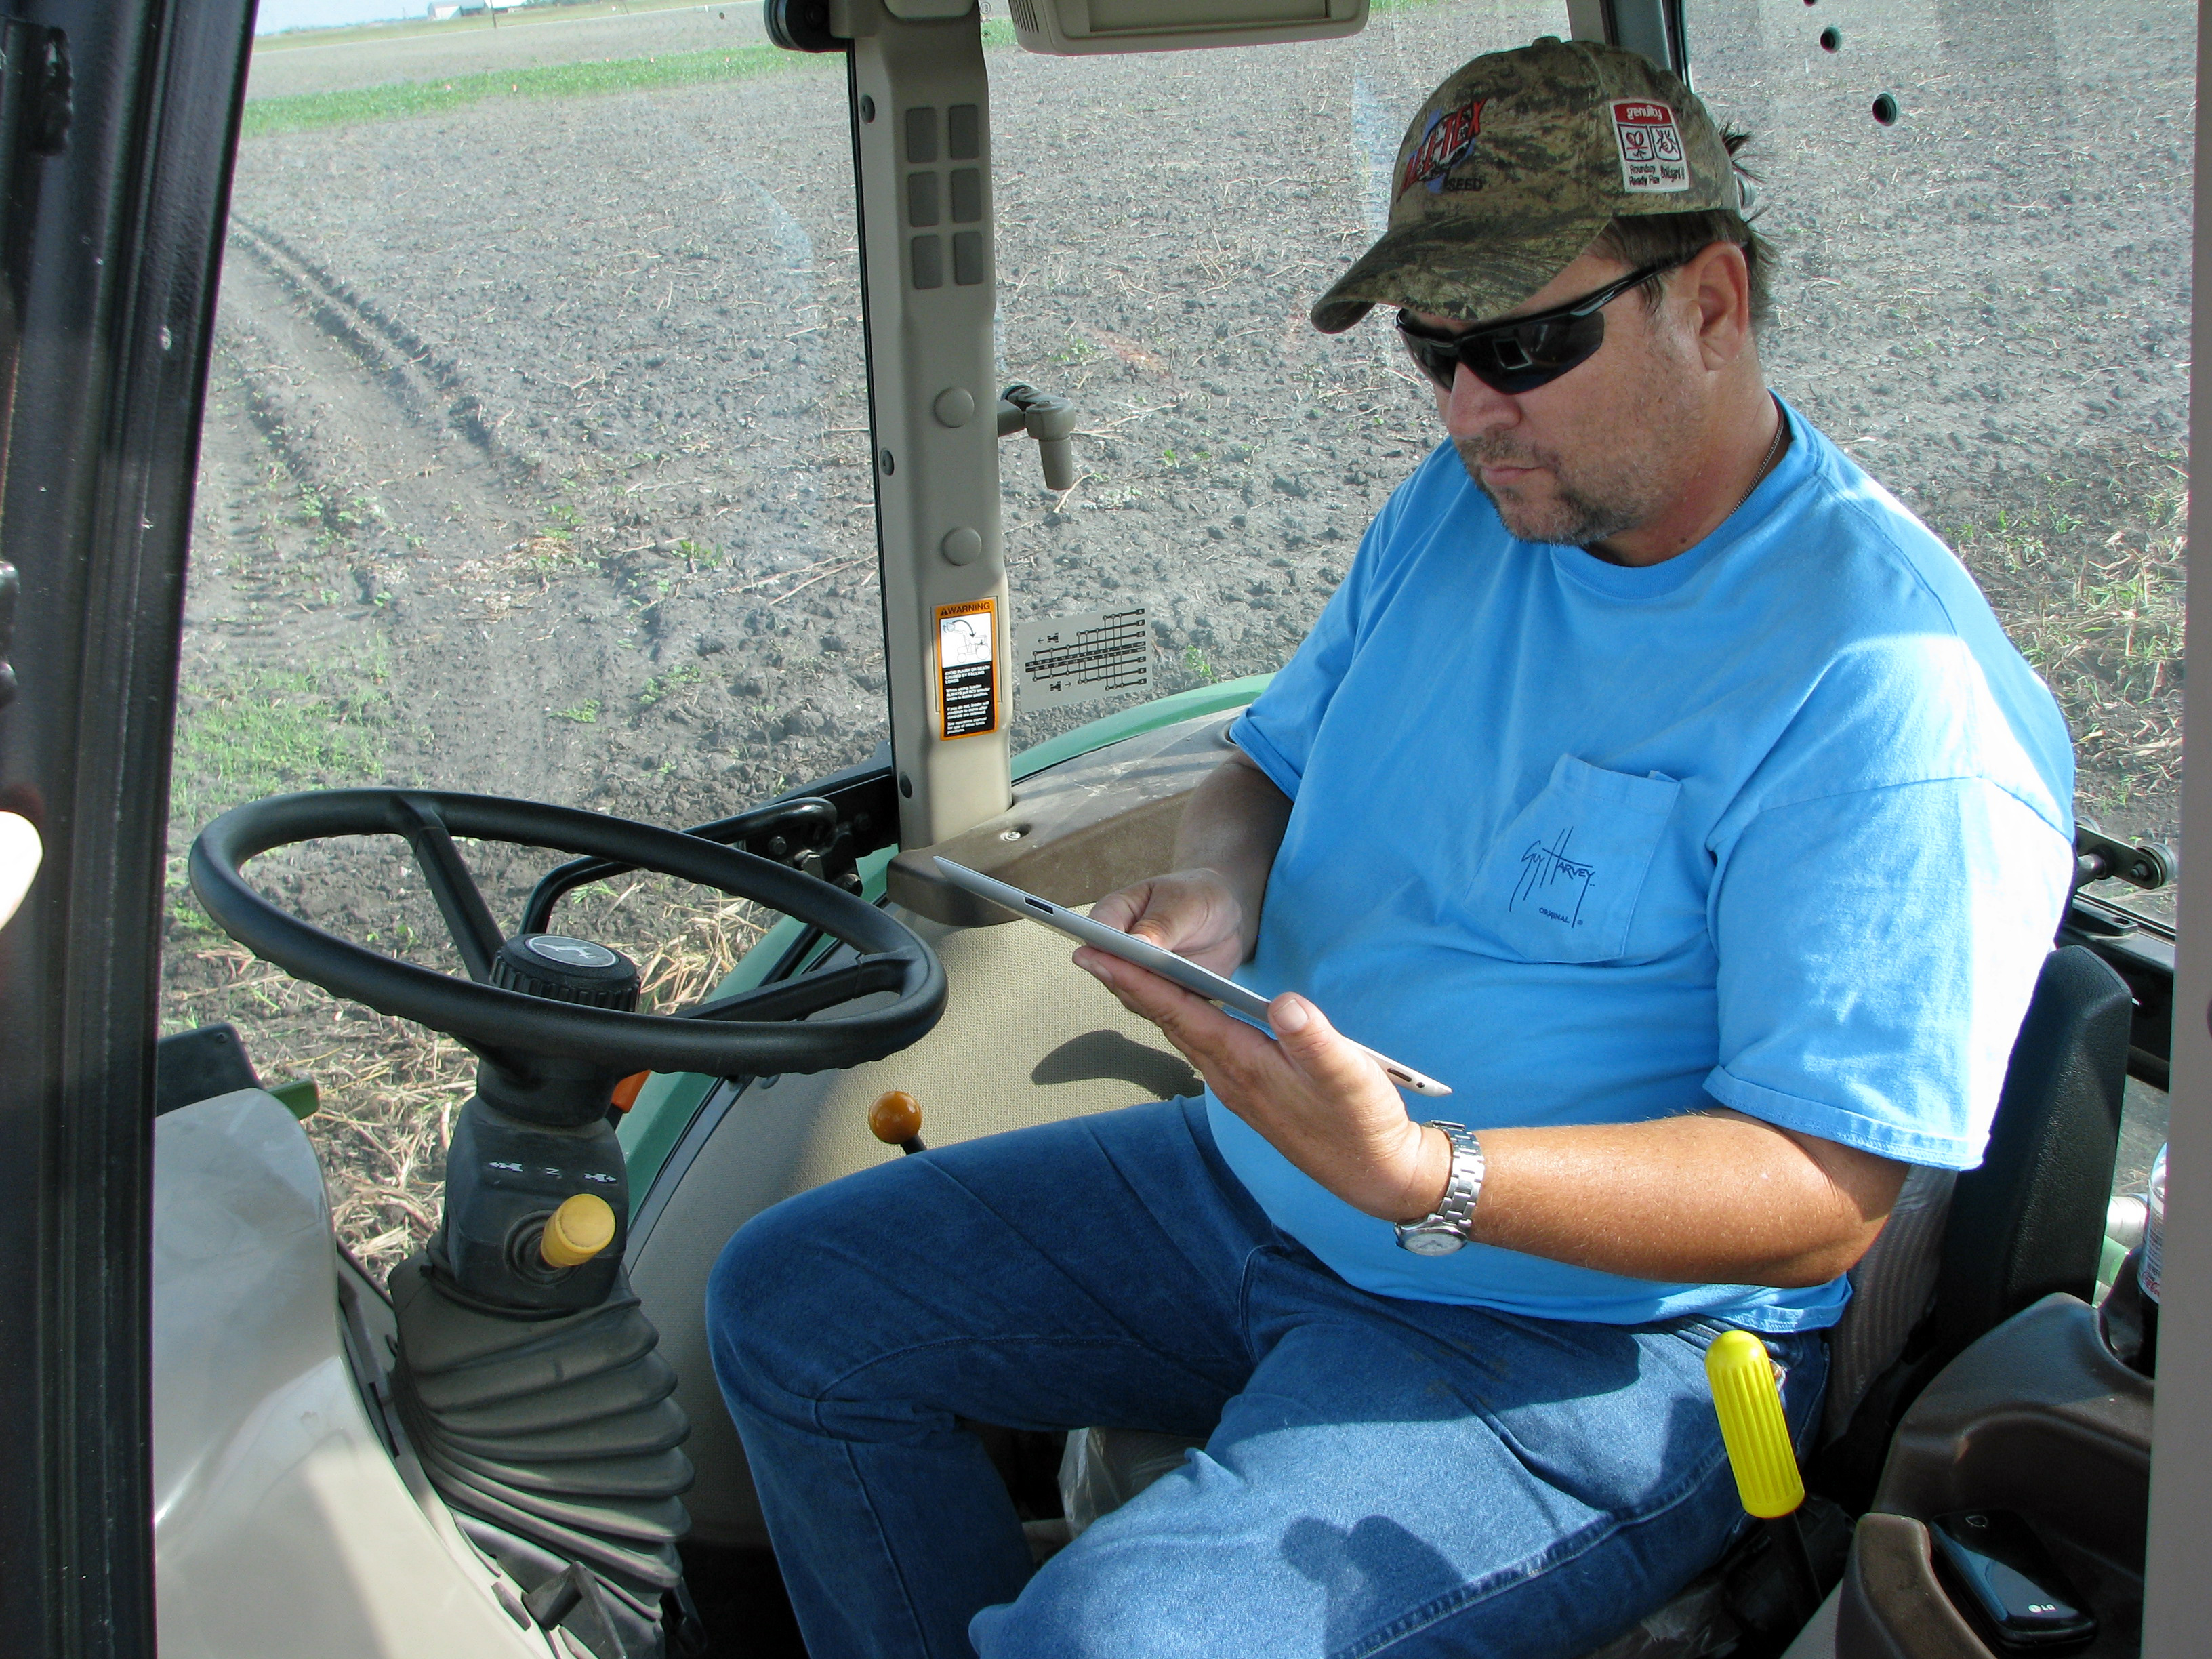 Farmer on tractor works with iPad